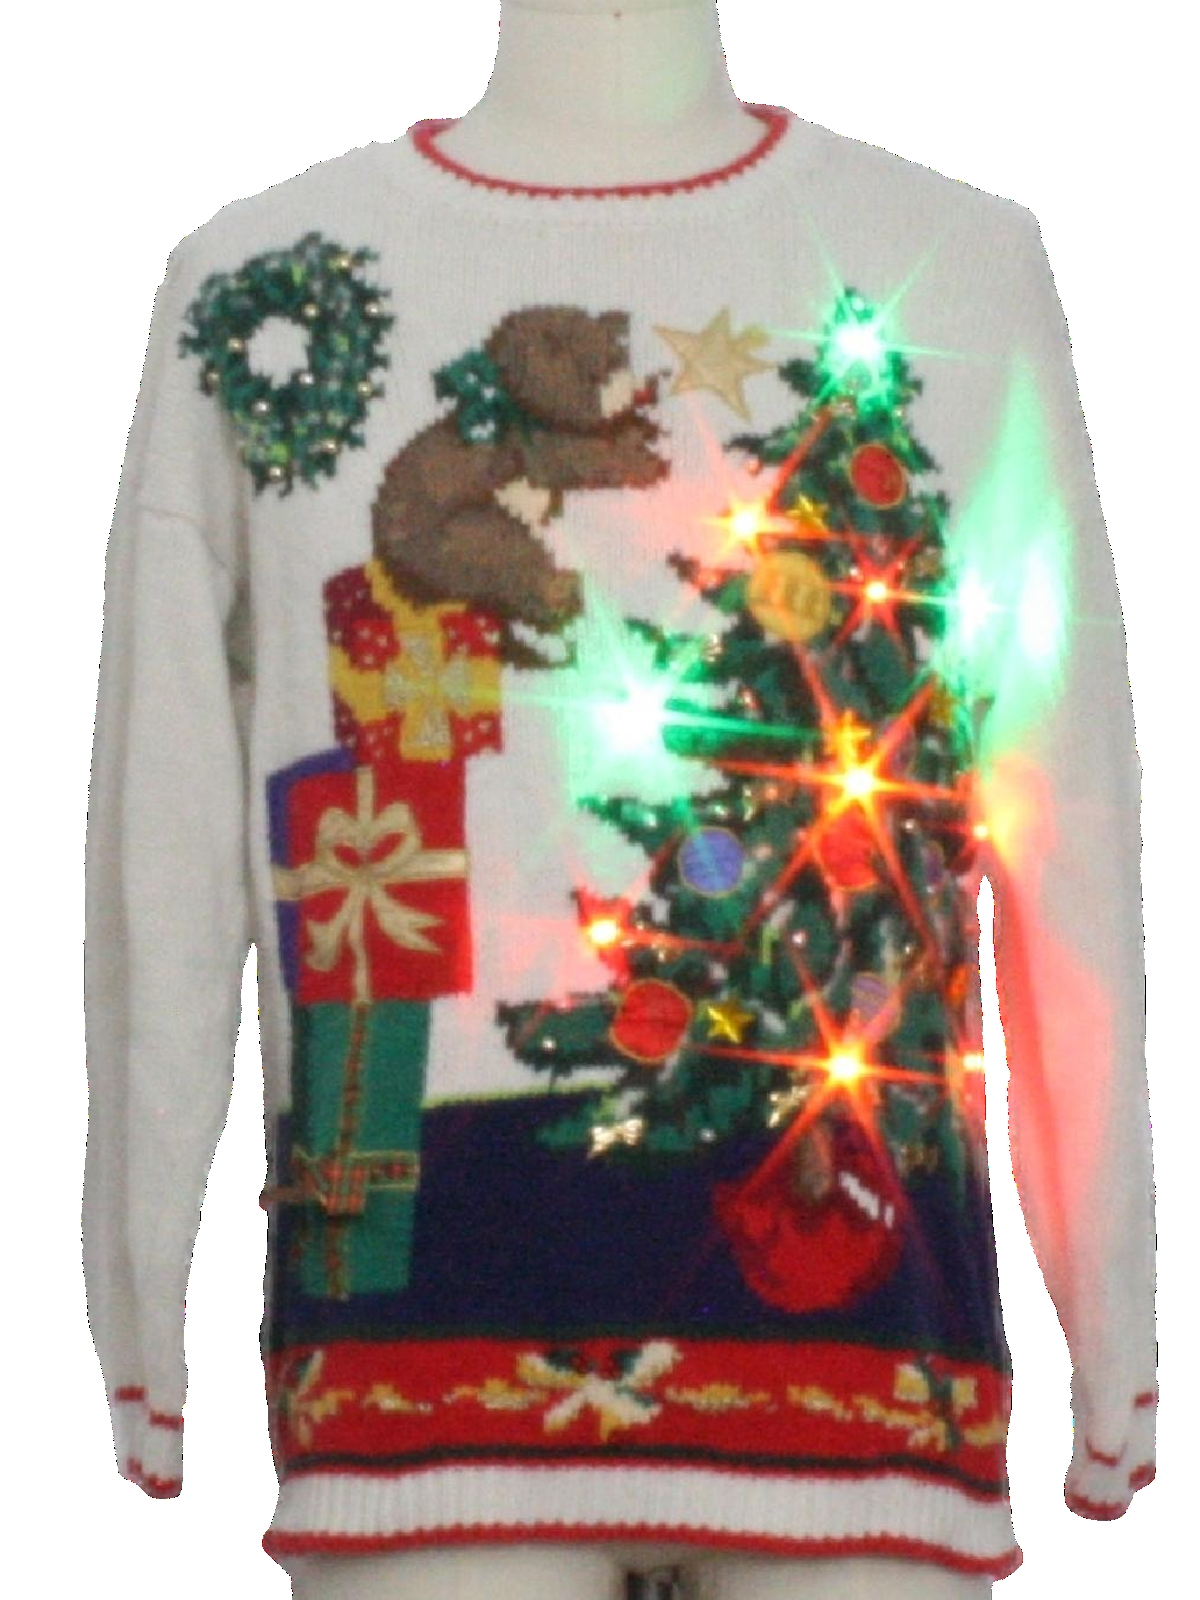 Super ugly christmas sweaters